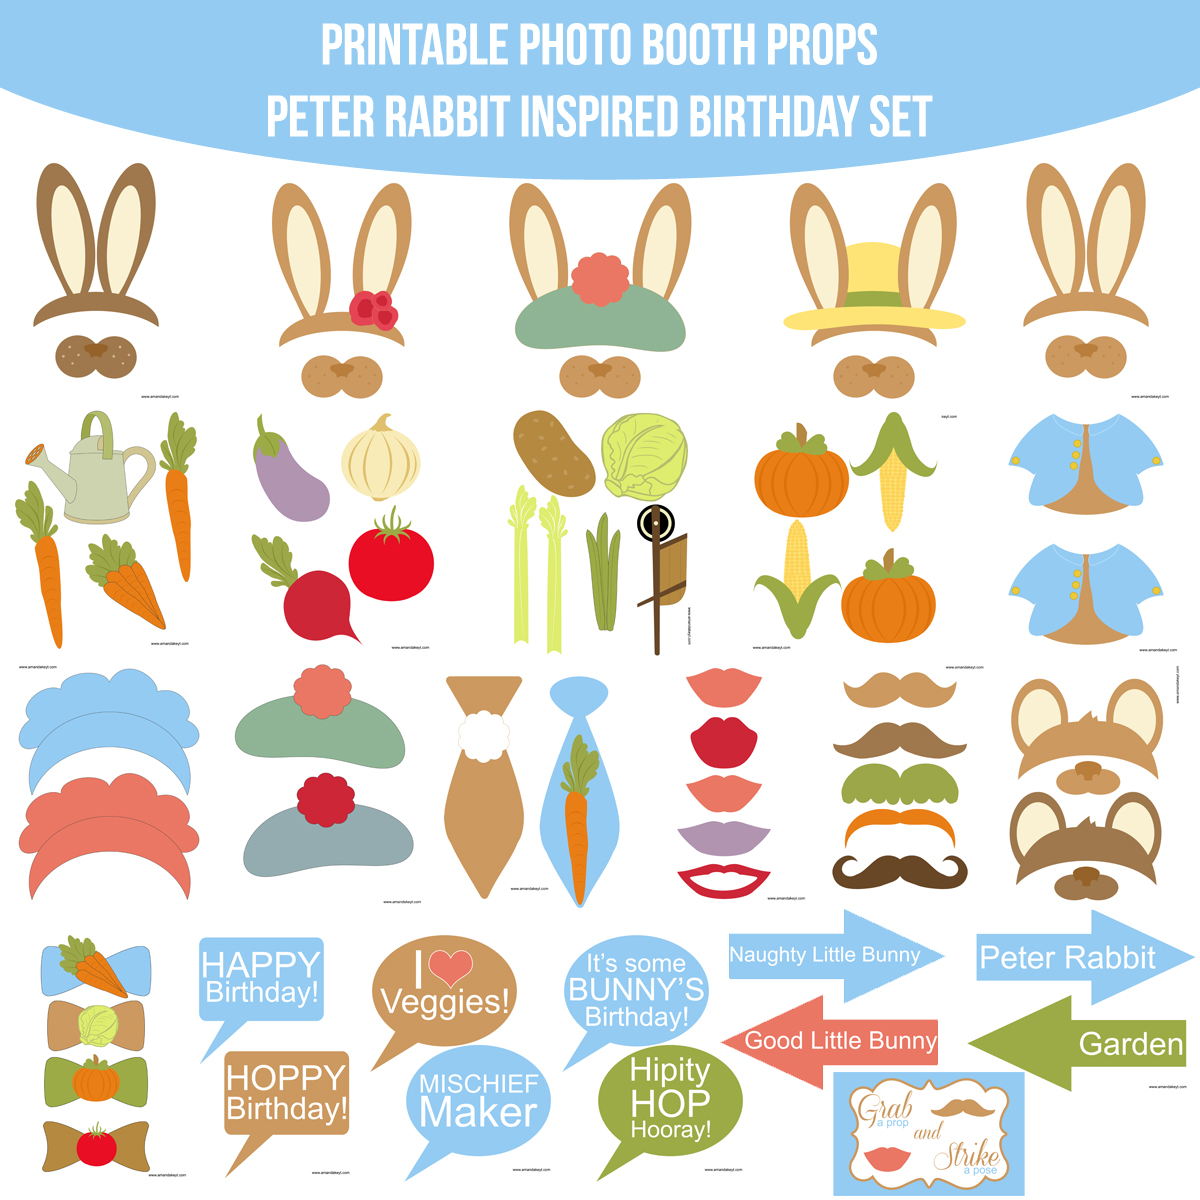 See the Set - To View The Whole Peter Rabbit Inspired Birthday Printable Photo Booth Prop Set Click Here